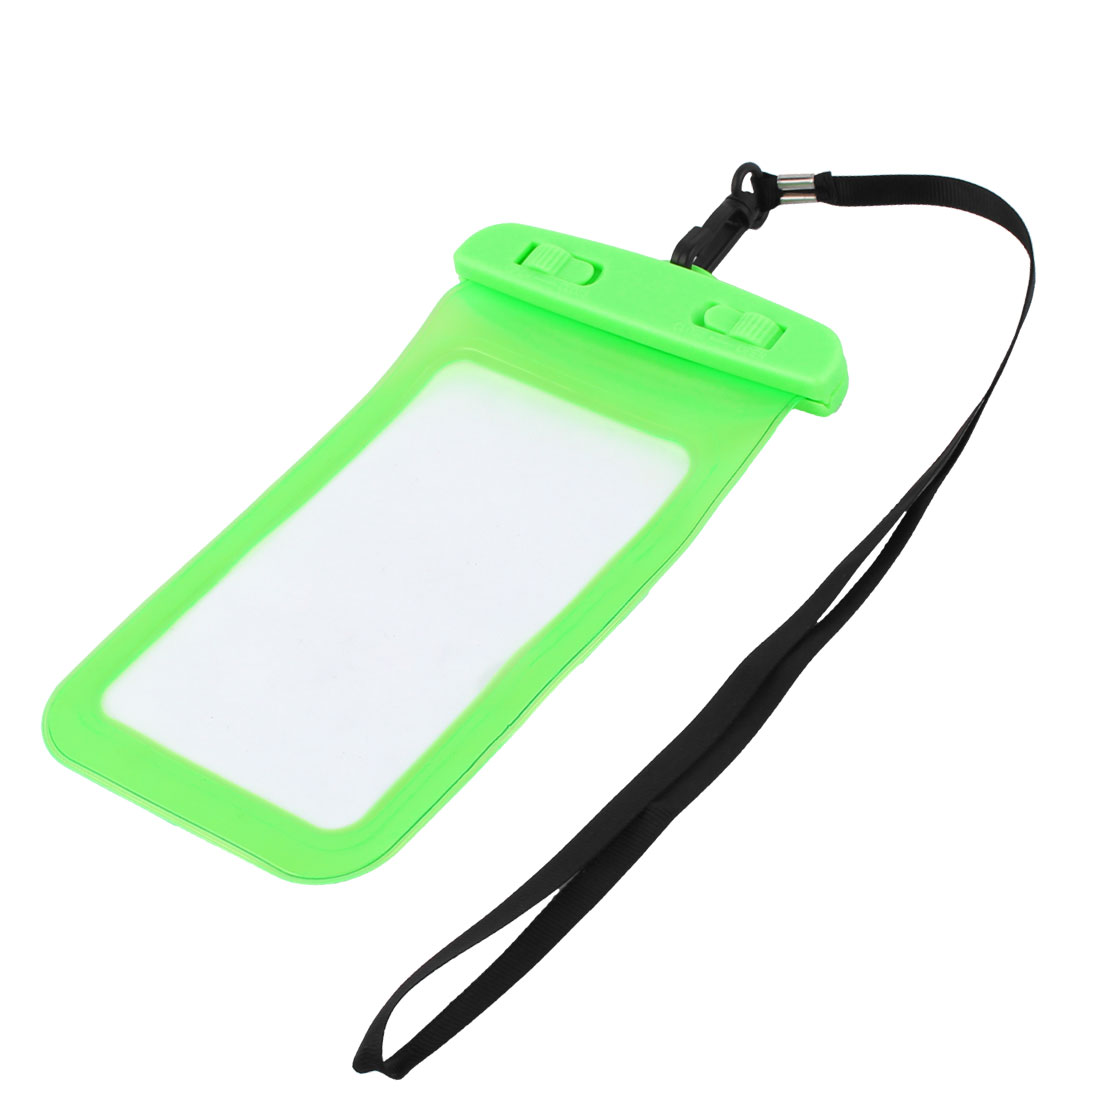 Underwater Cell Phone Water Resistant Case Bag Pouch Holder Container Green